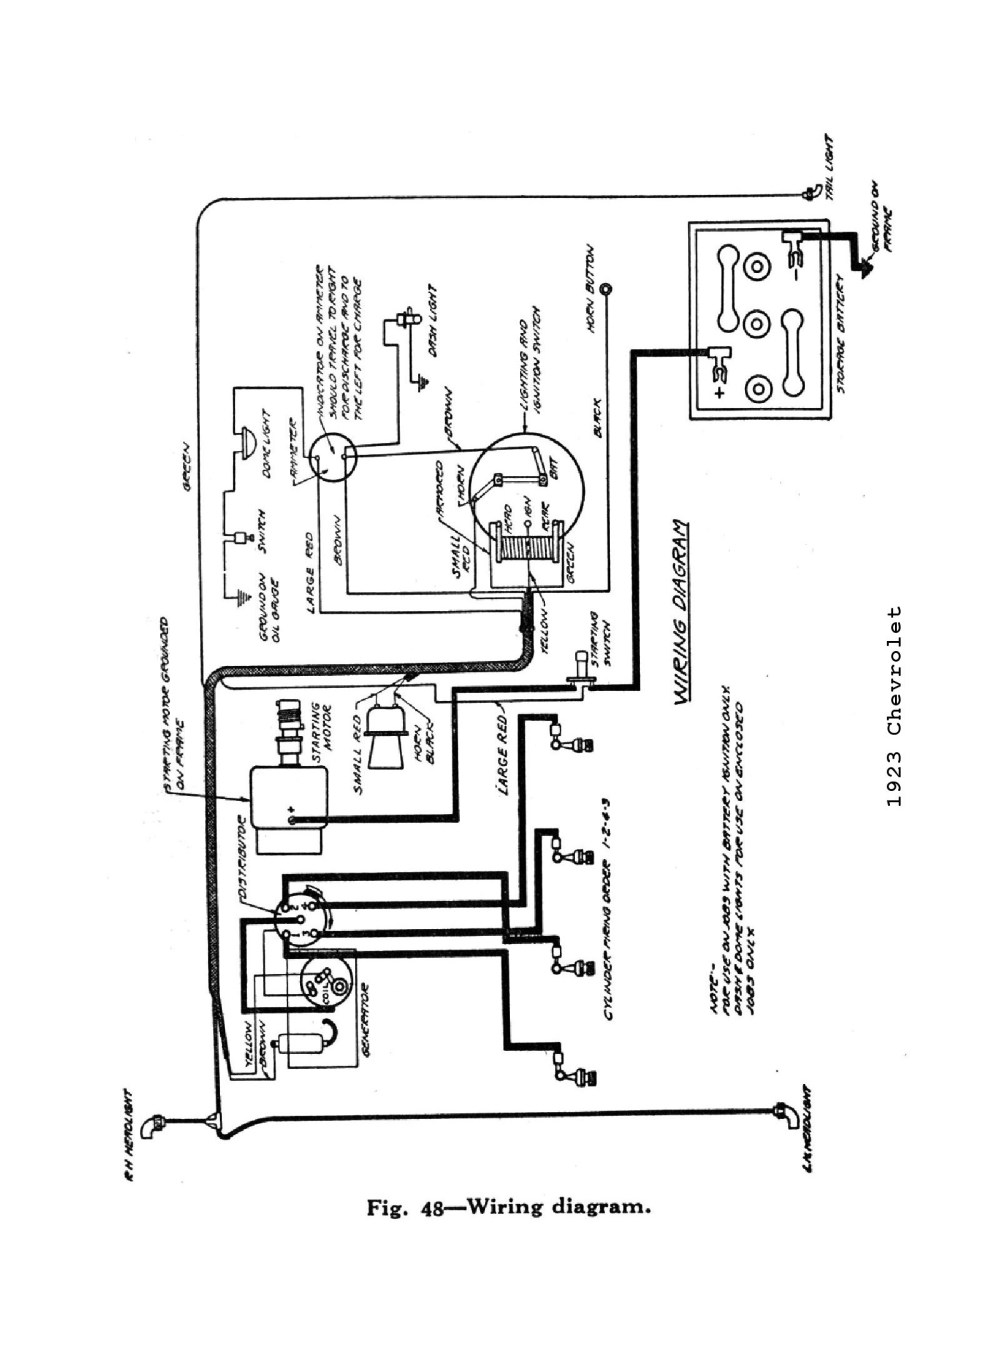 medium resolution of 1957 chevy truck wiring harness diagram free wiring diagram query 1957 chevy truck wiring harness